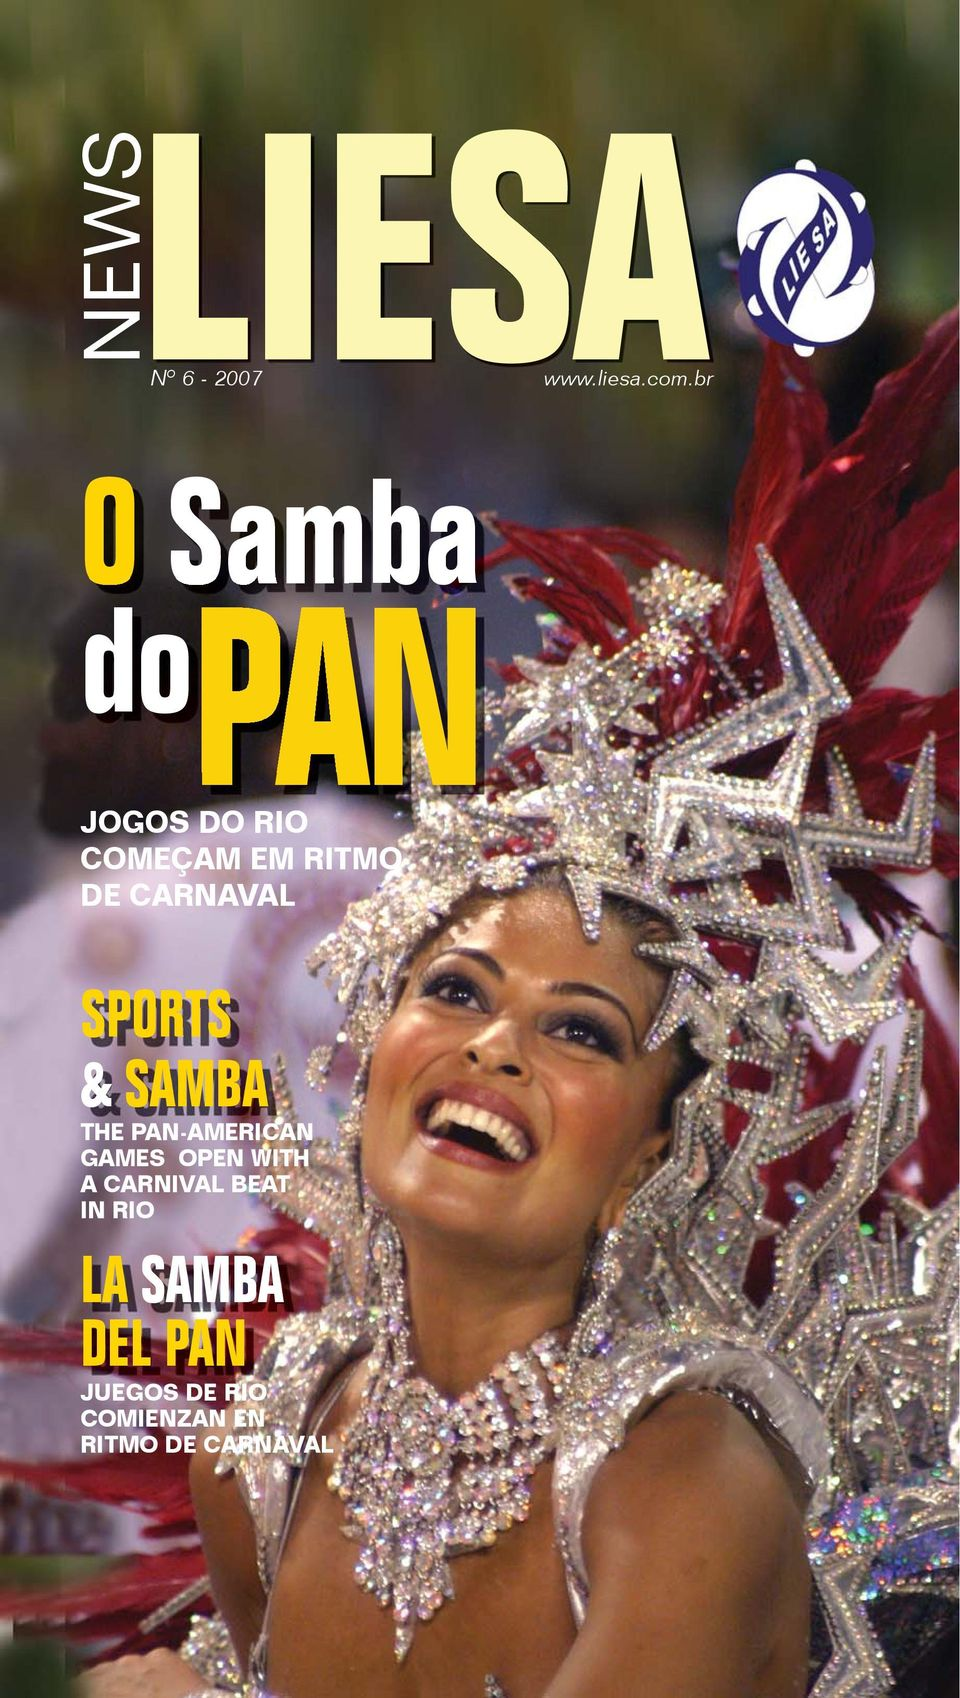 RITMO DE CARNAVAL SPORTS & SAMBA THE PAN-AMERICAN GAMES